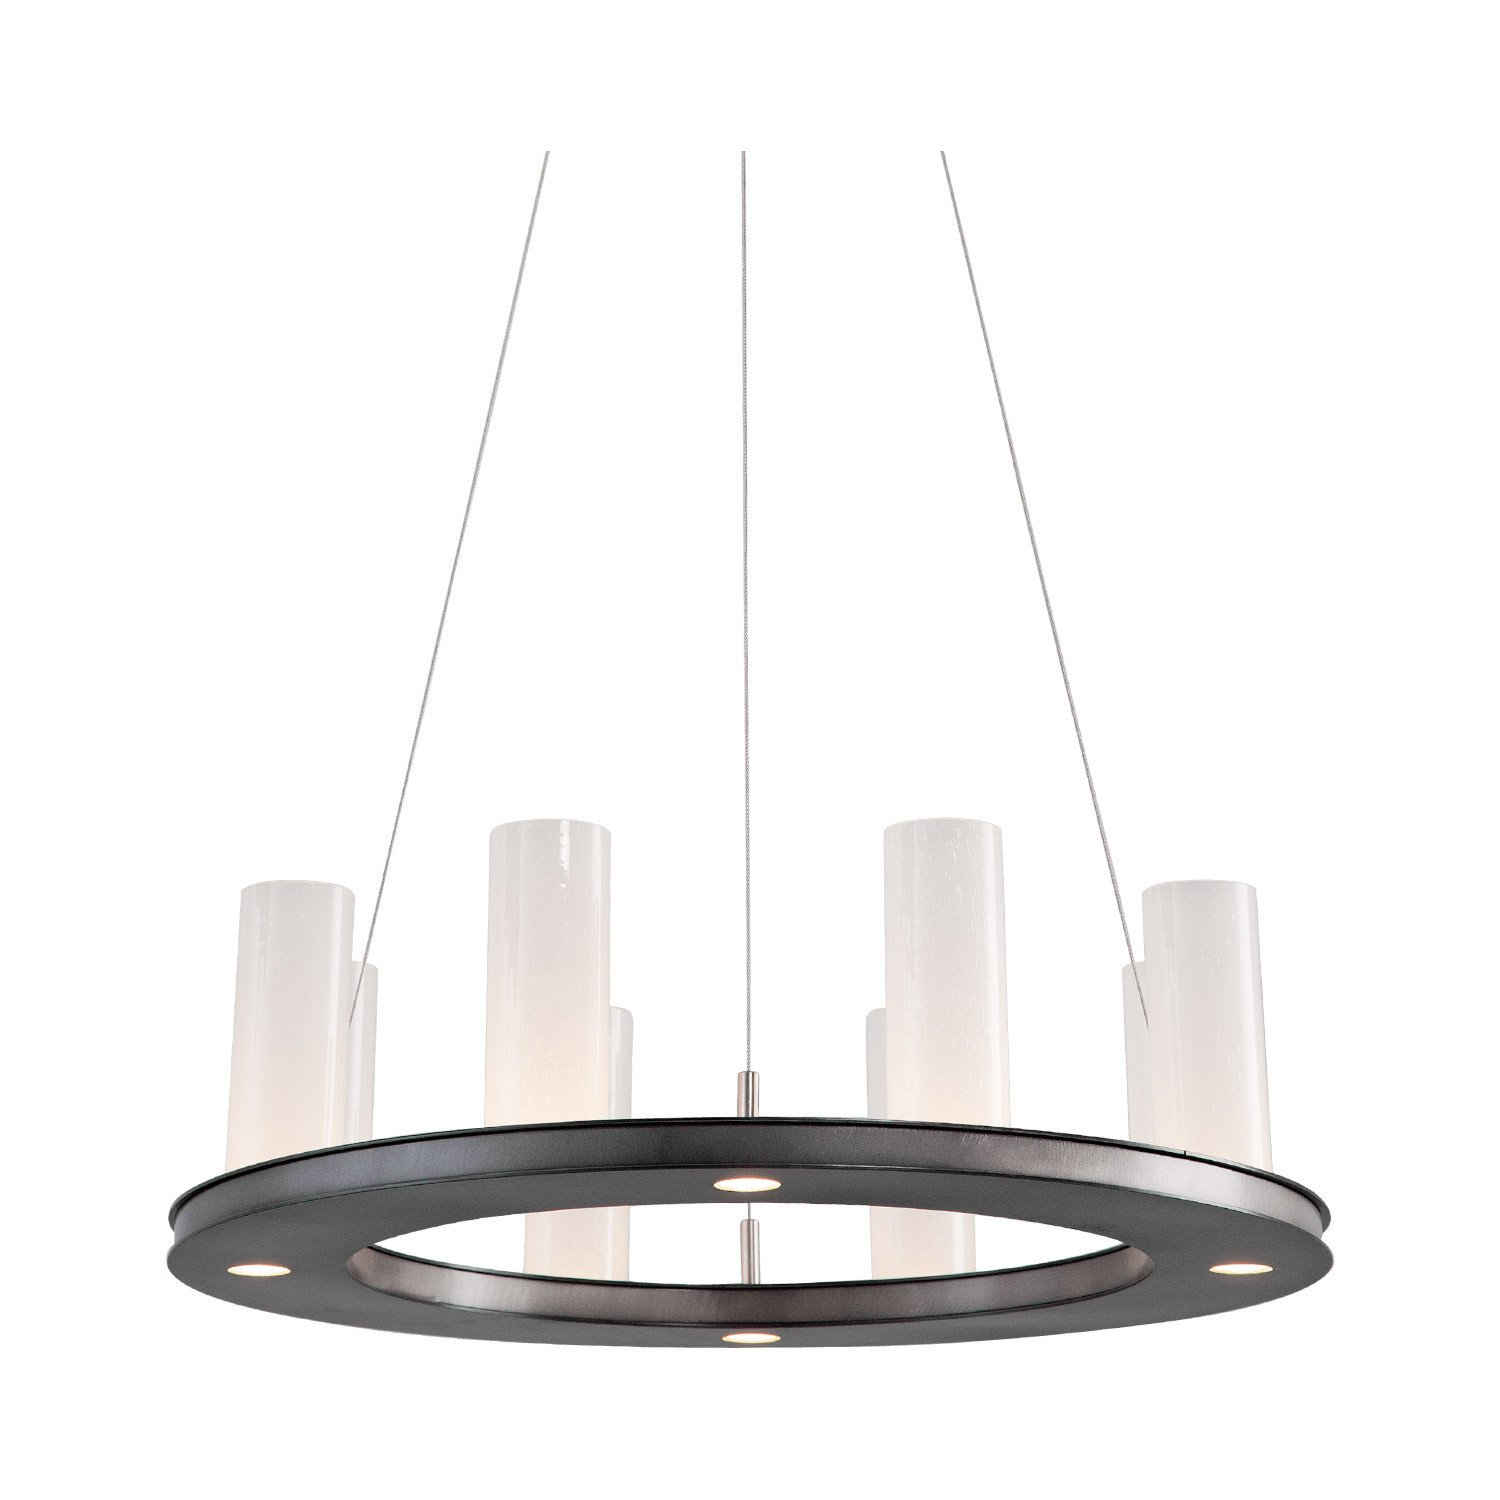 Bedroom Reading Light Wall Mounted Best Of Corona Ring Chandelier by Hammerton Studio